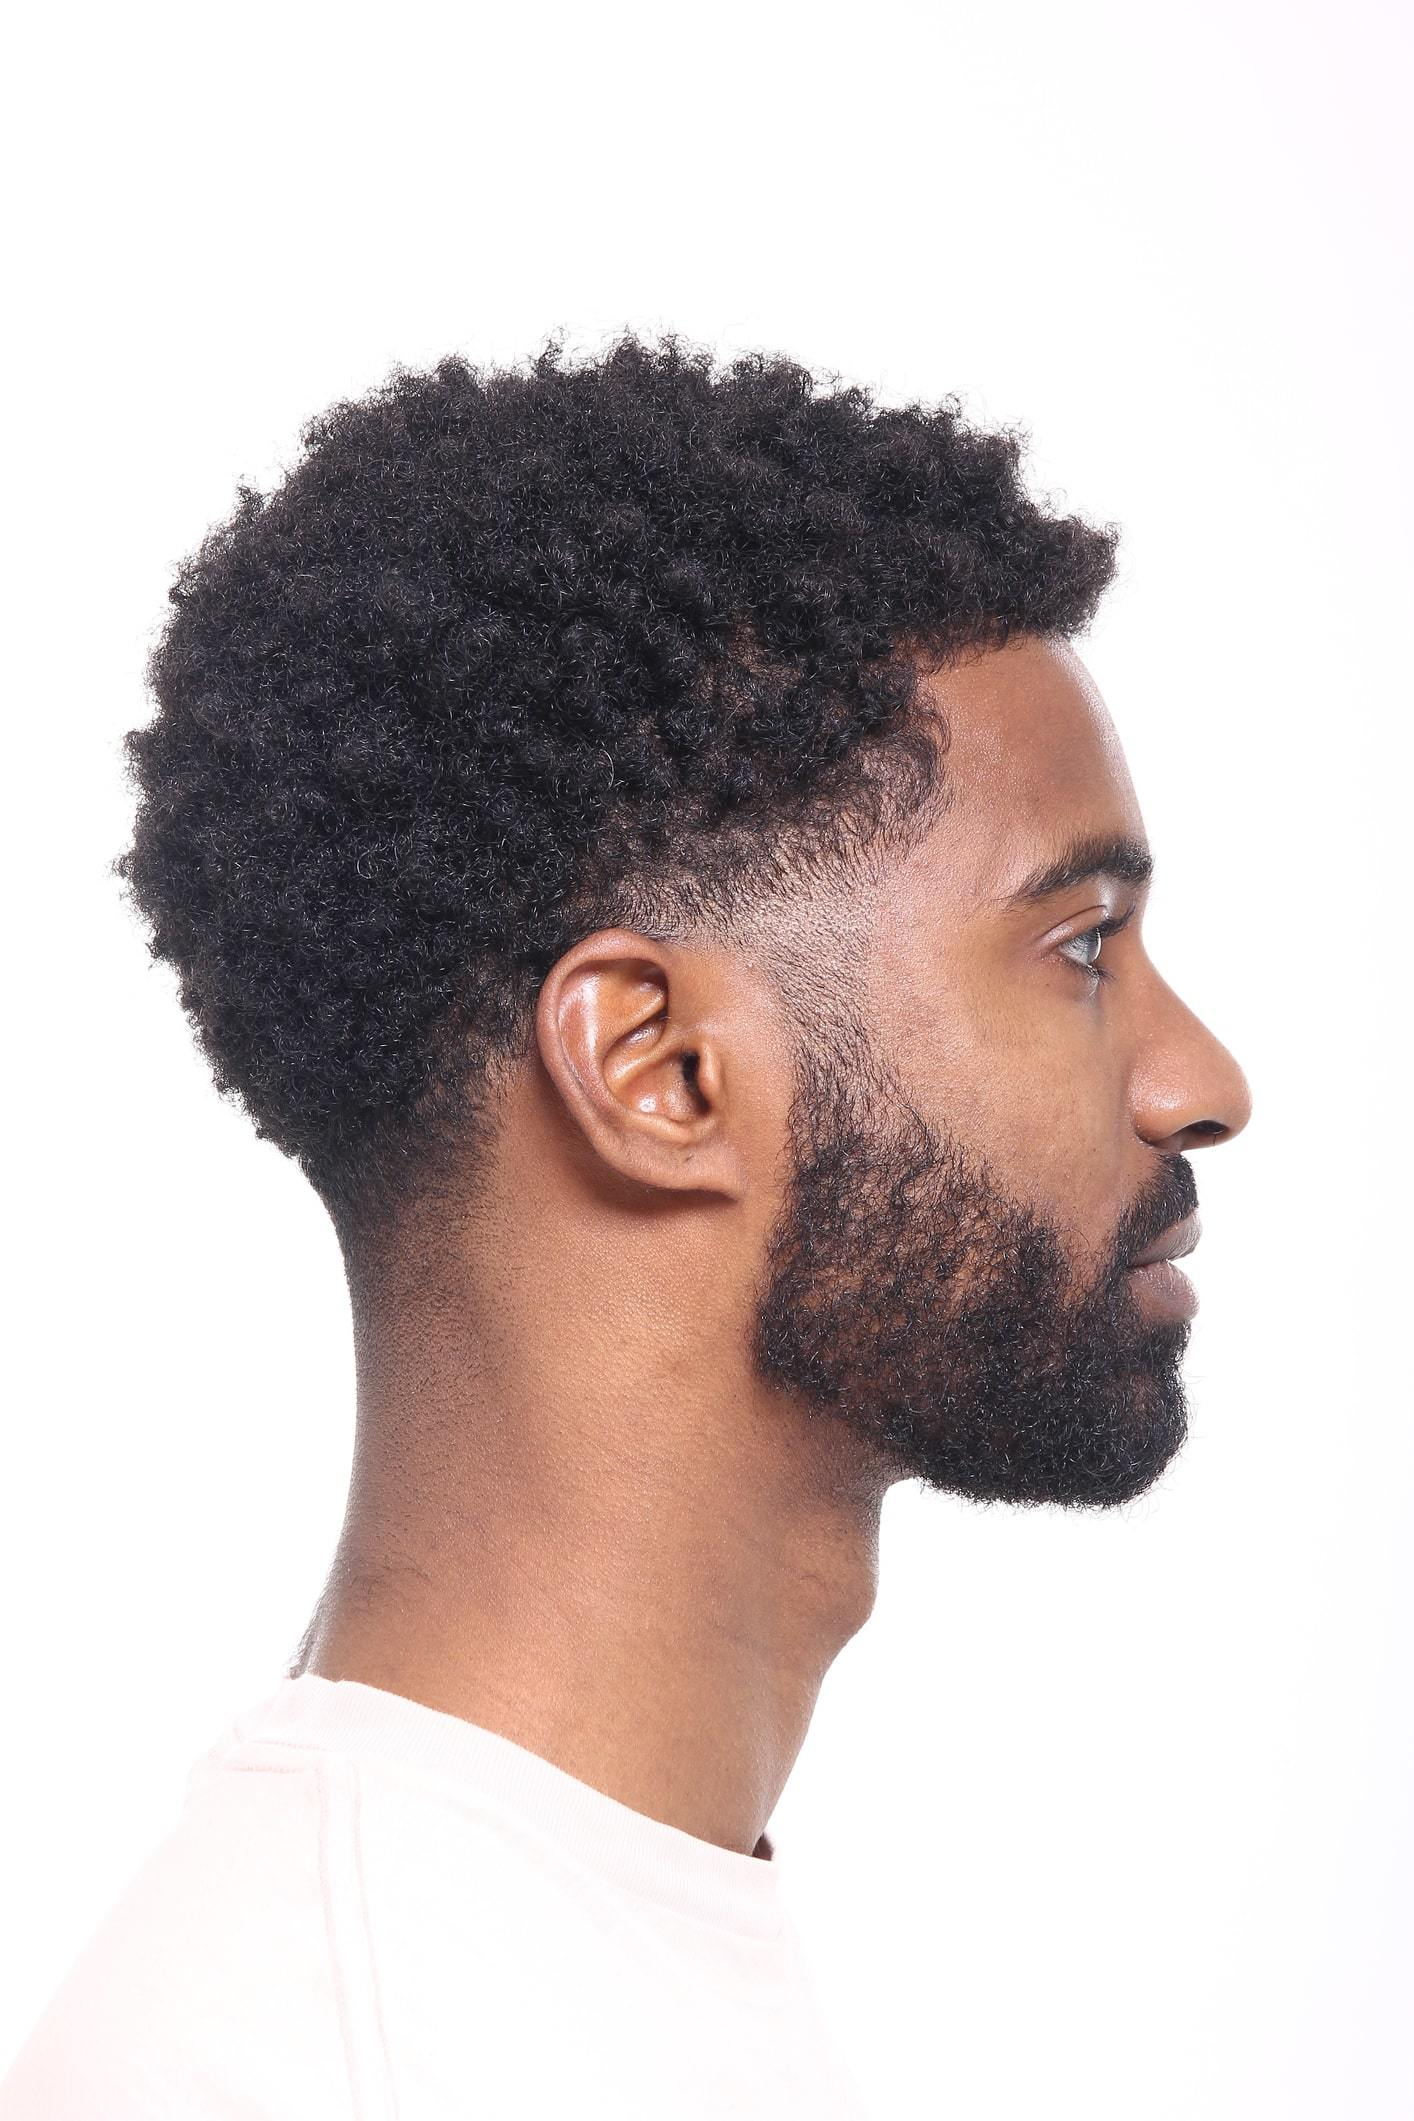 Black Men Haircuts To Try For 2020 All Things Hair Us